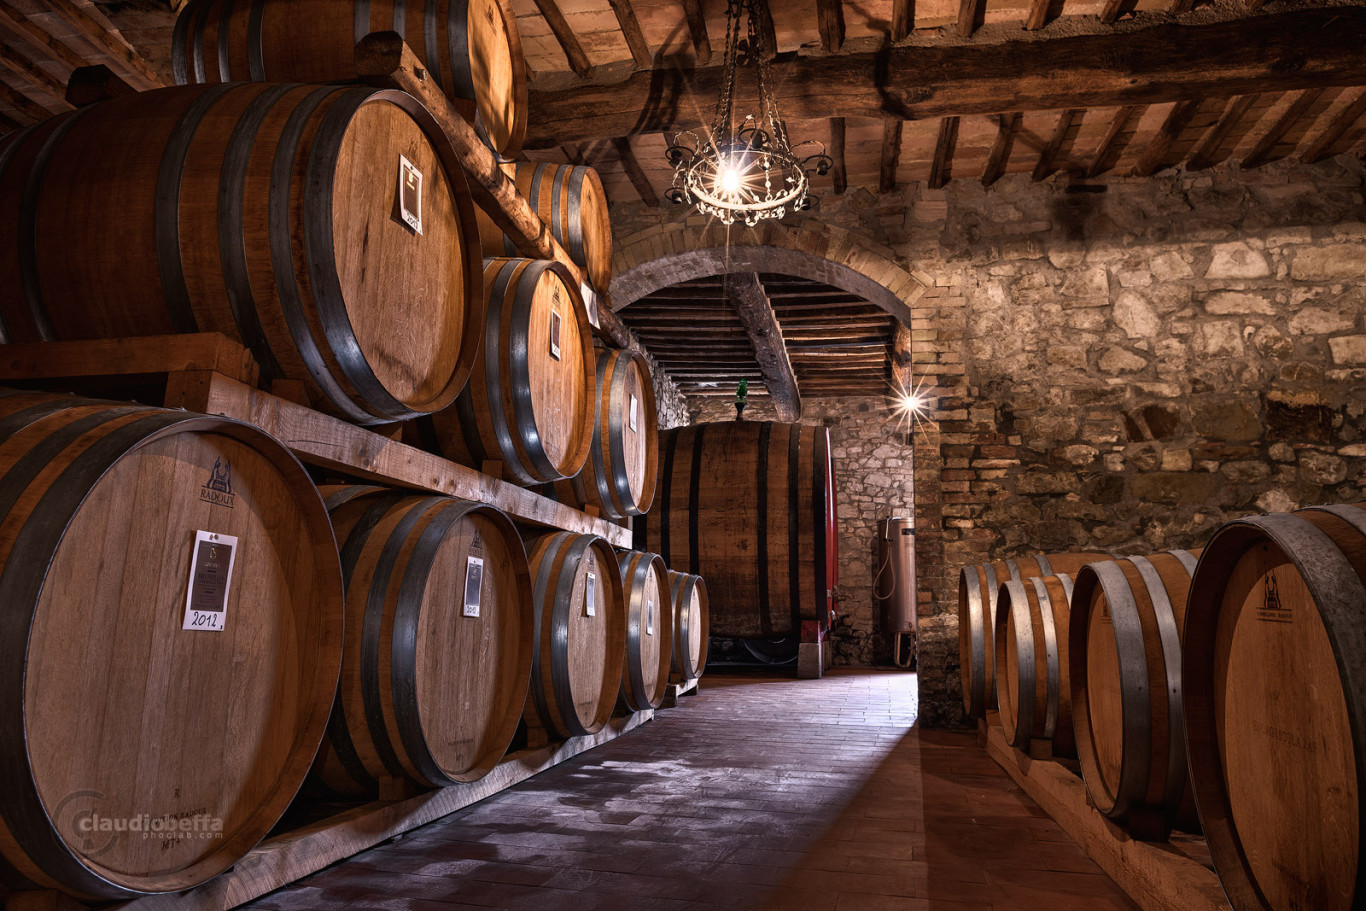 Cellar, Casks, Ancient, Wine, Wine-making, Costanti, Light, Wood, Bricks, Tuscany, Toscana, Val d'Orcia, Montalcino, Italy, Italia